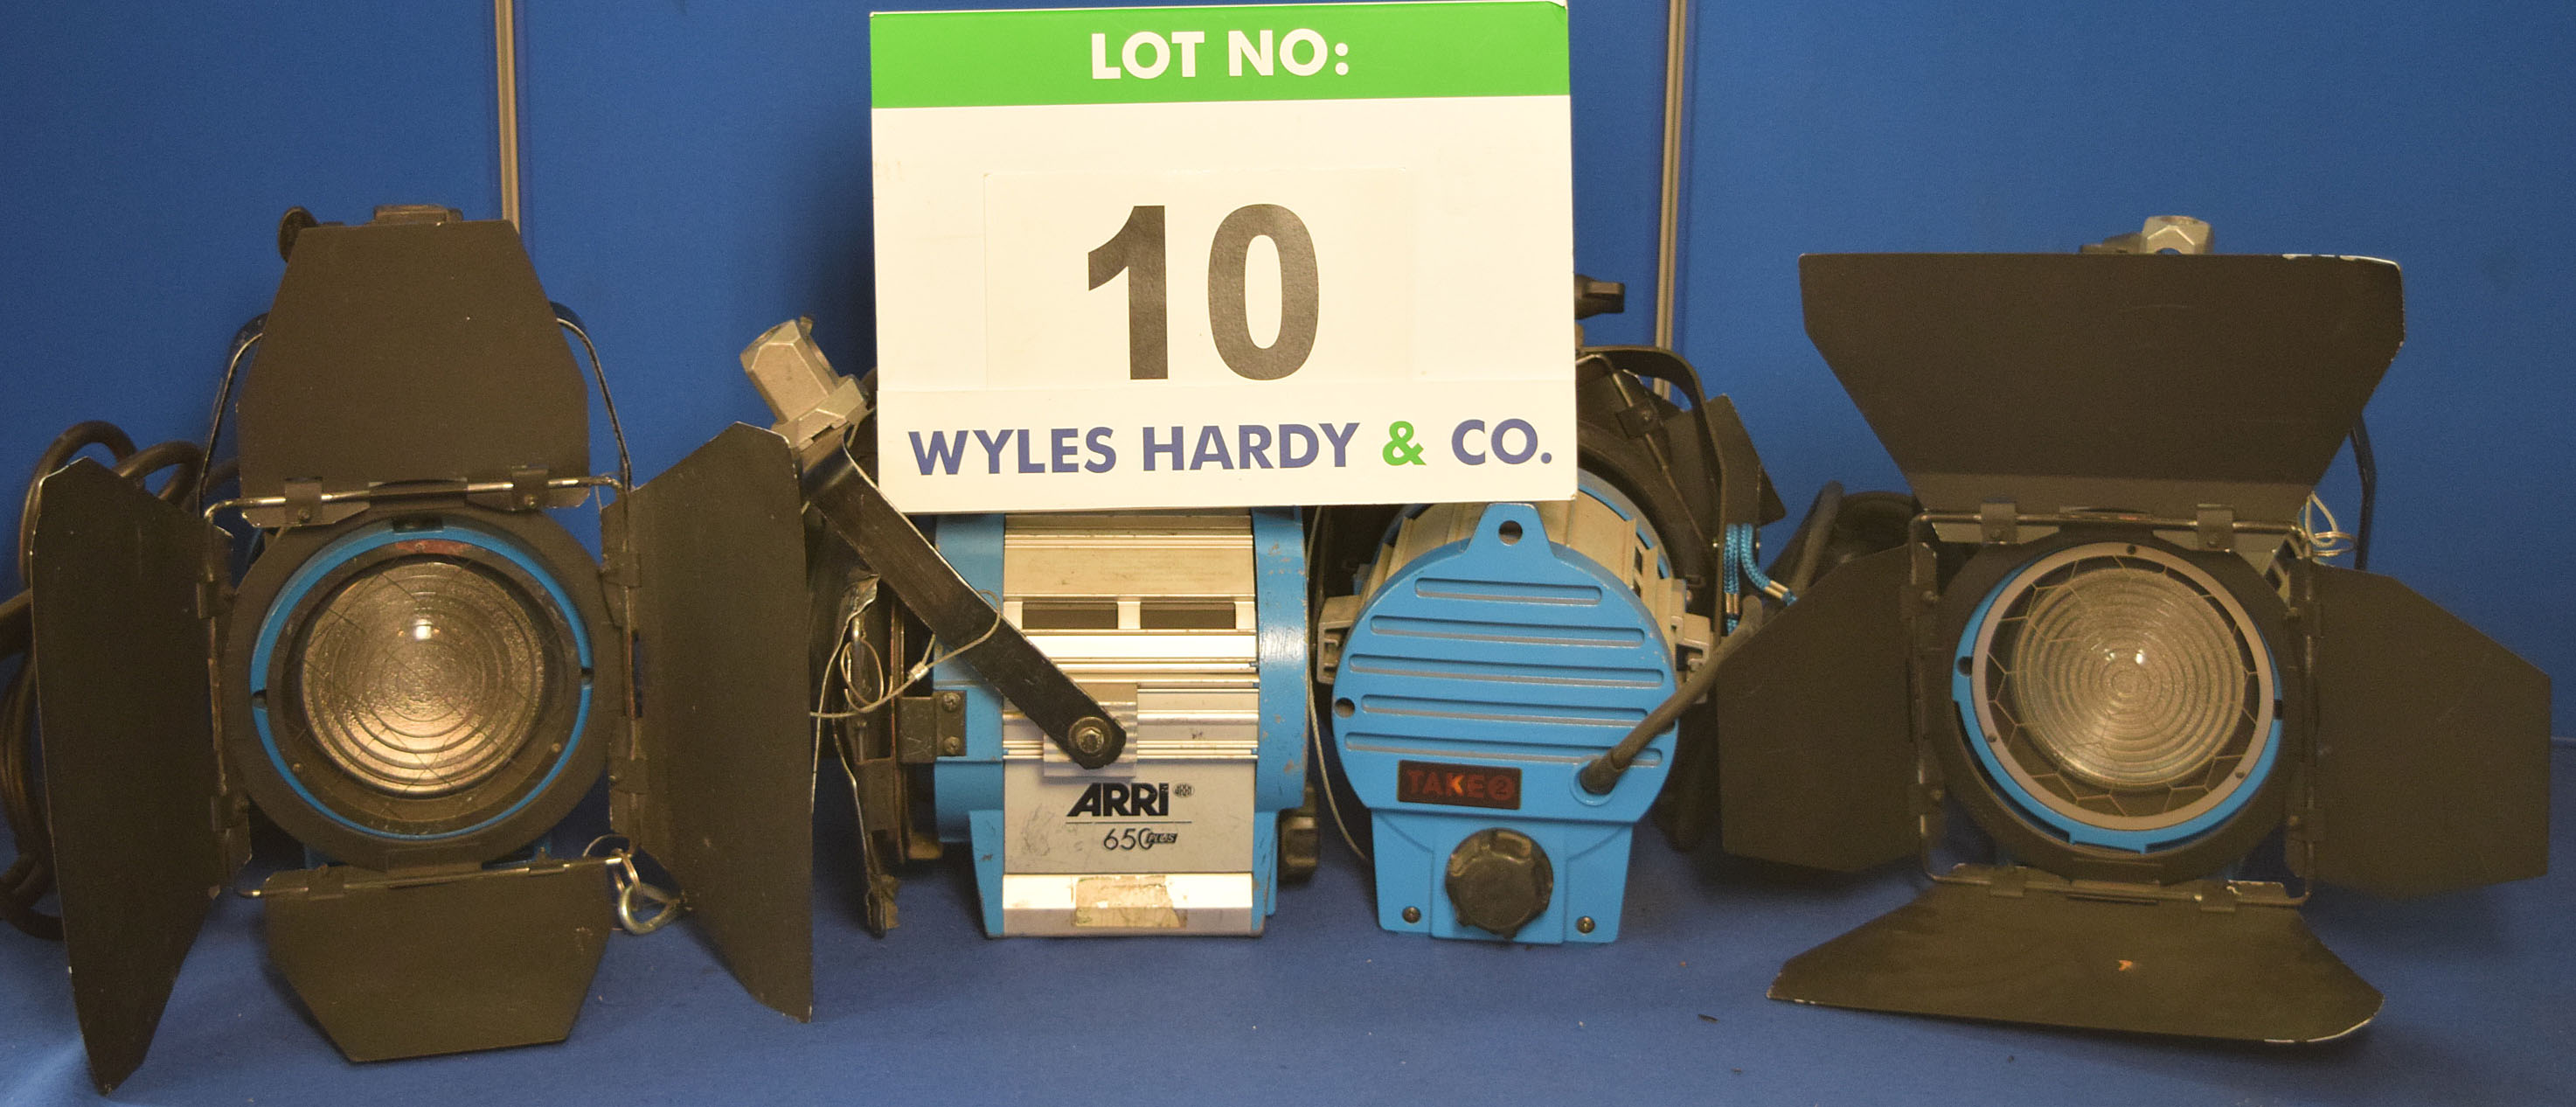 Lot 10 - Four ARRI 650 Plus 650W Lights each with fitted Barn Doors, Stirrup Mount and Switched Power Feed